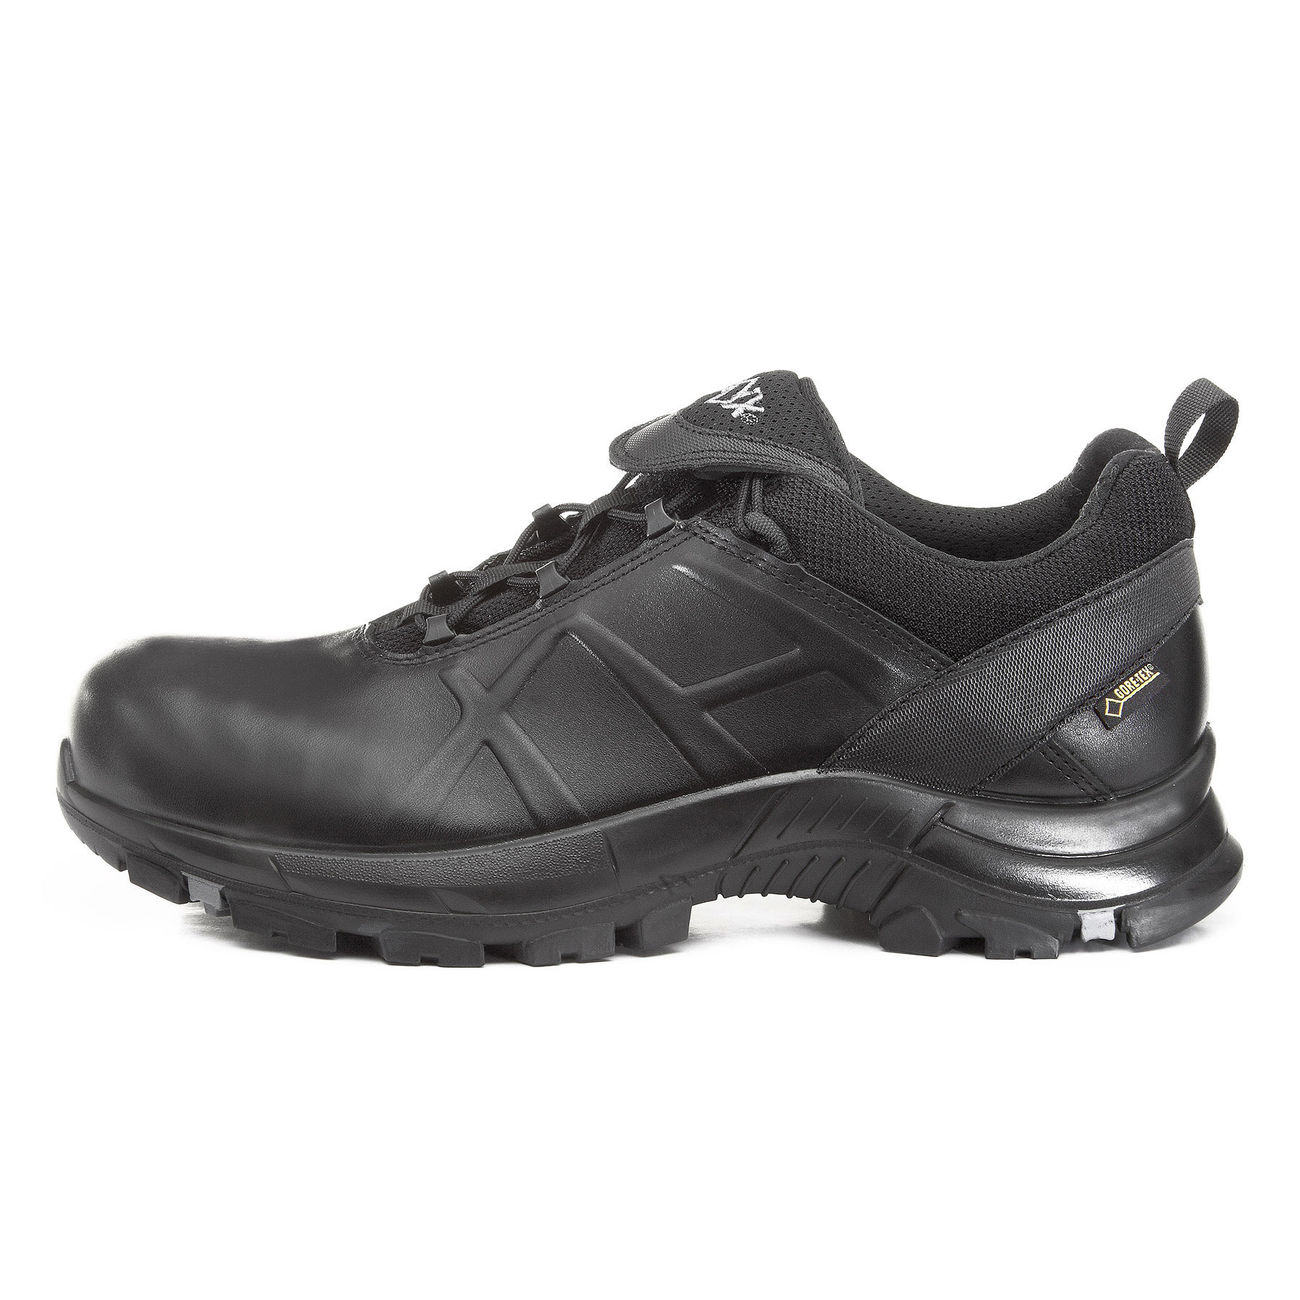 Haix Sicherhheitsschuh Black Eagle Safety 50 Low Leder schwarz 0